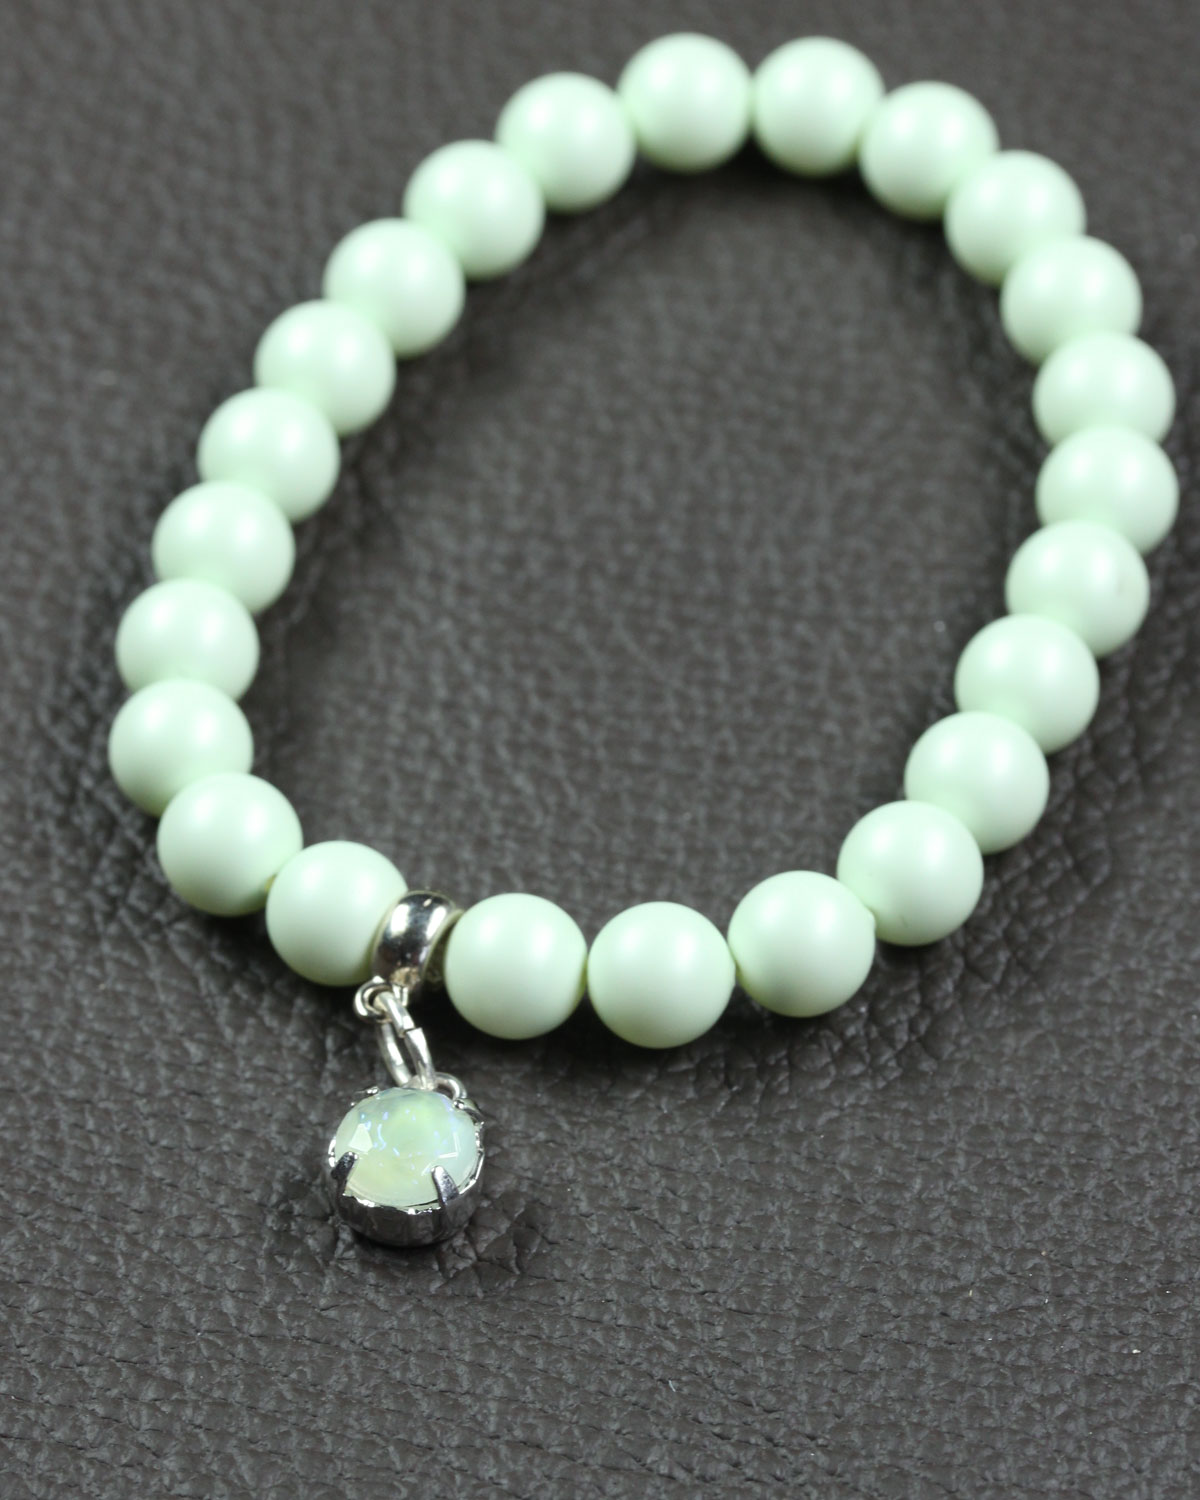 Pastel green swarovski bracelet with glass charm